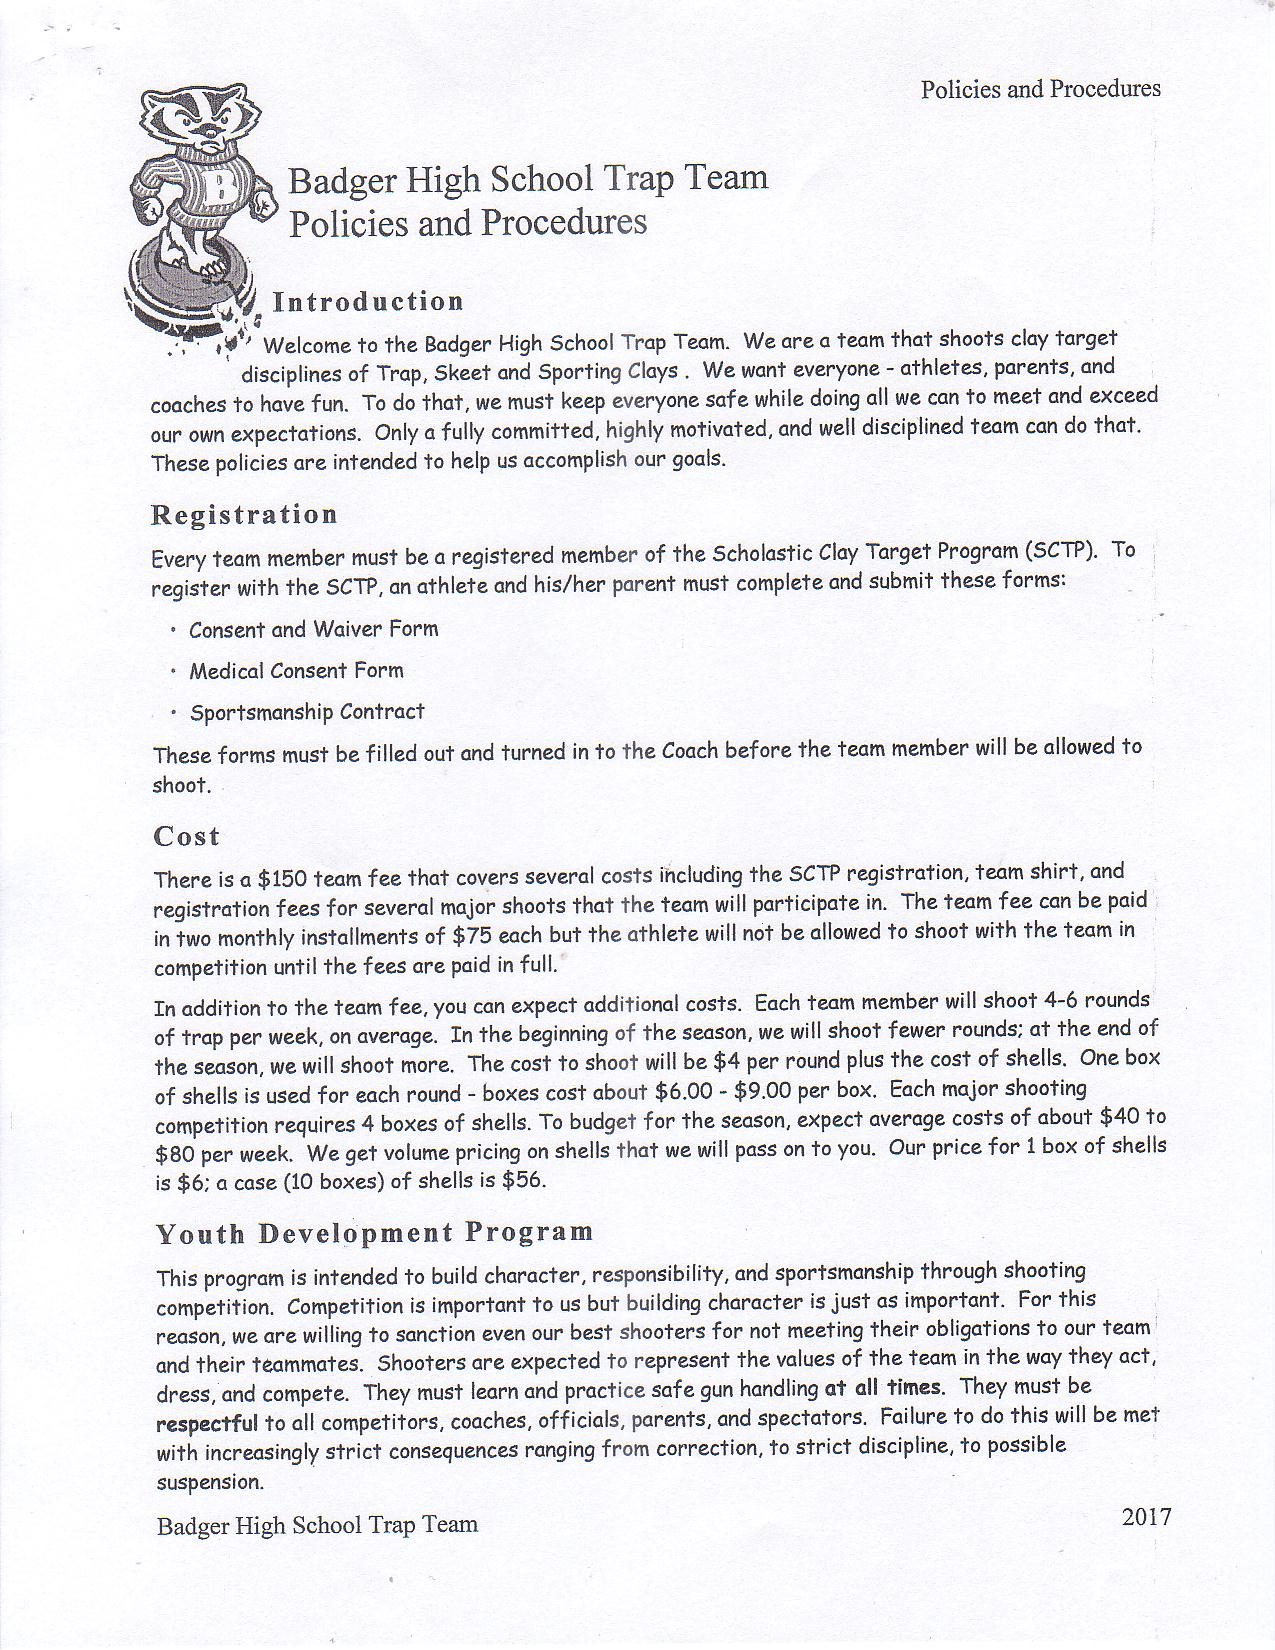 Policies and Procedures Page 1